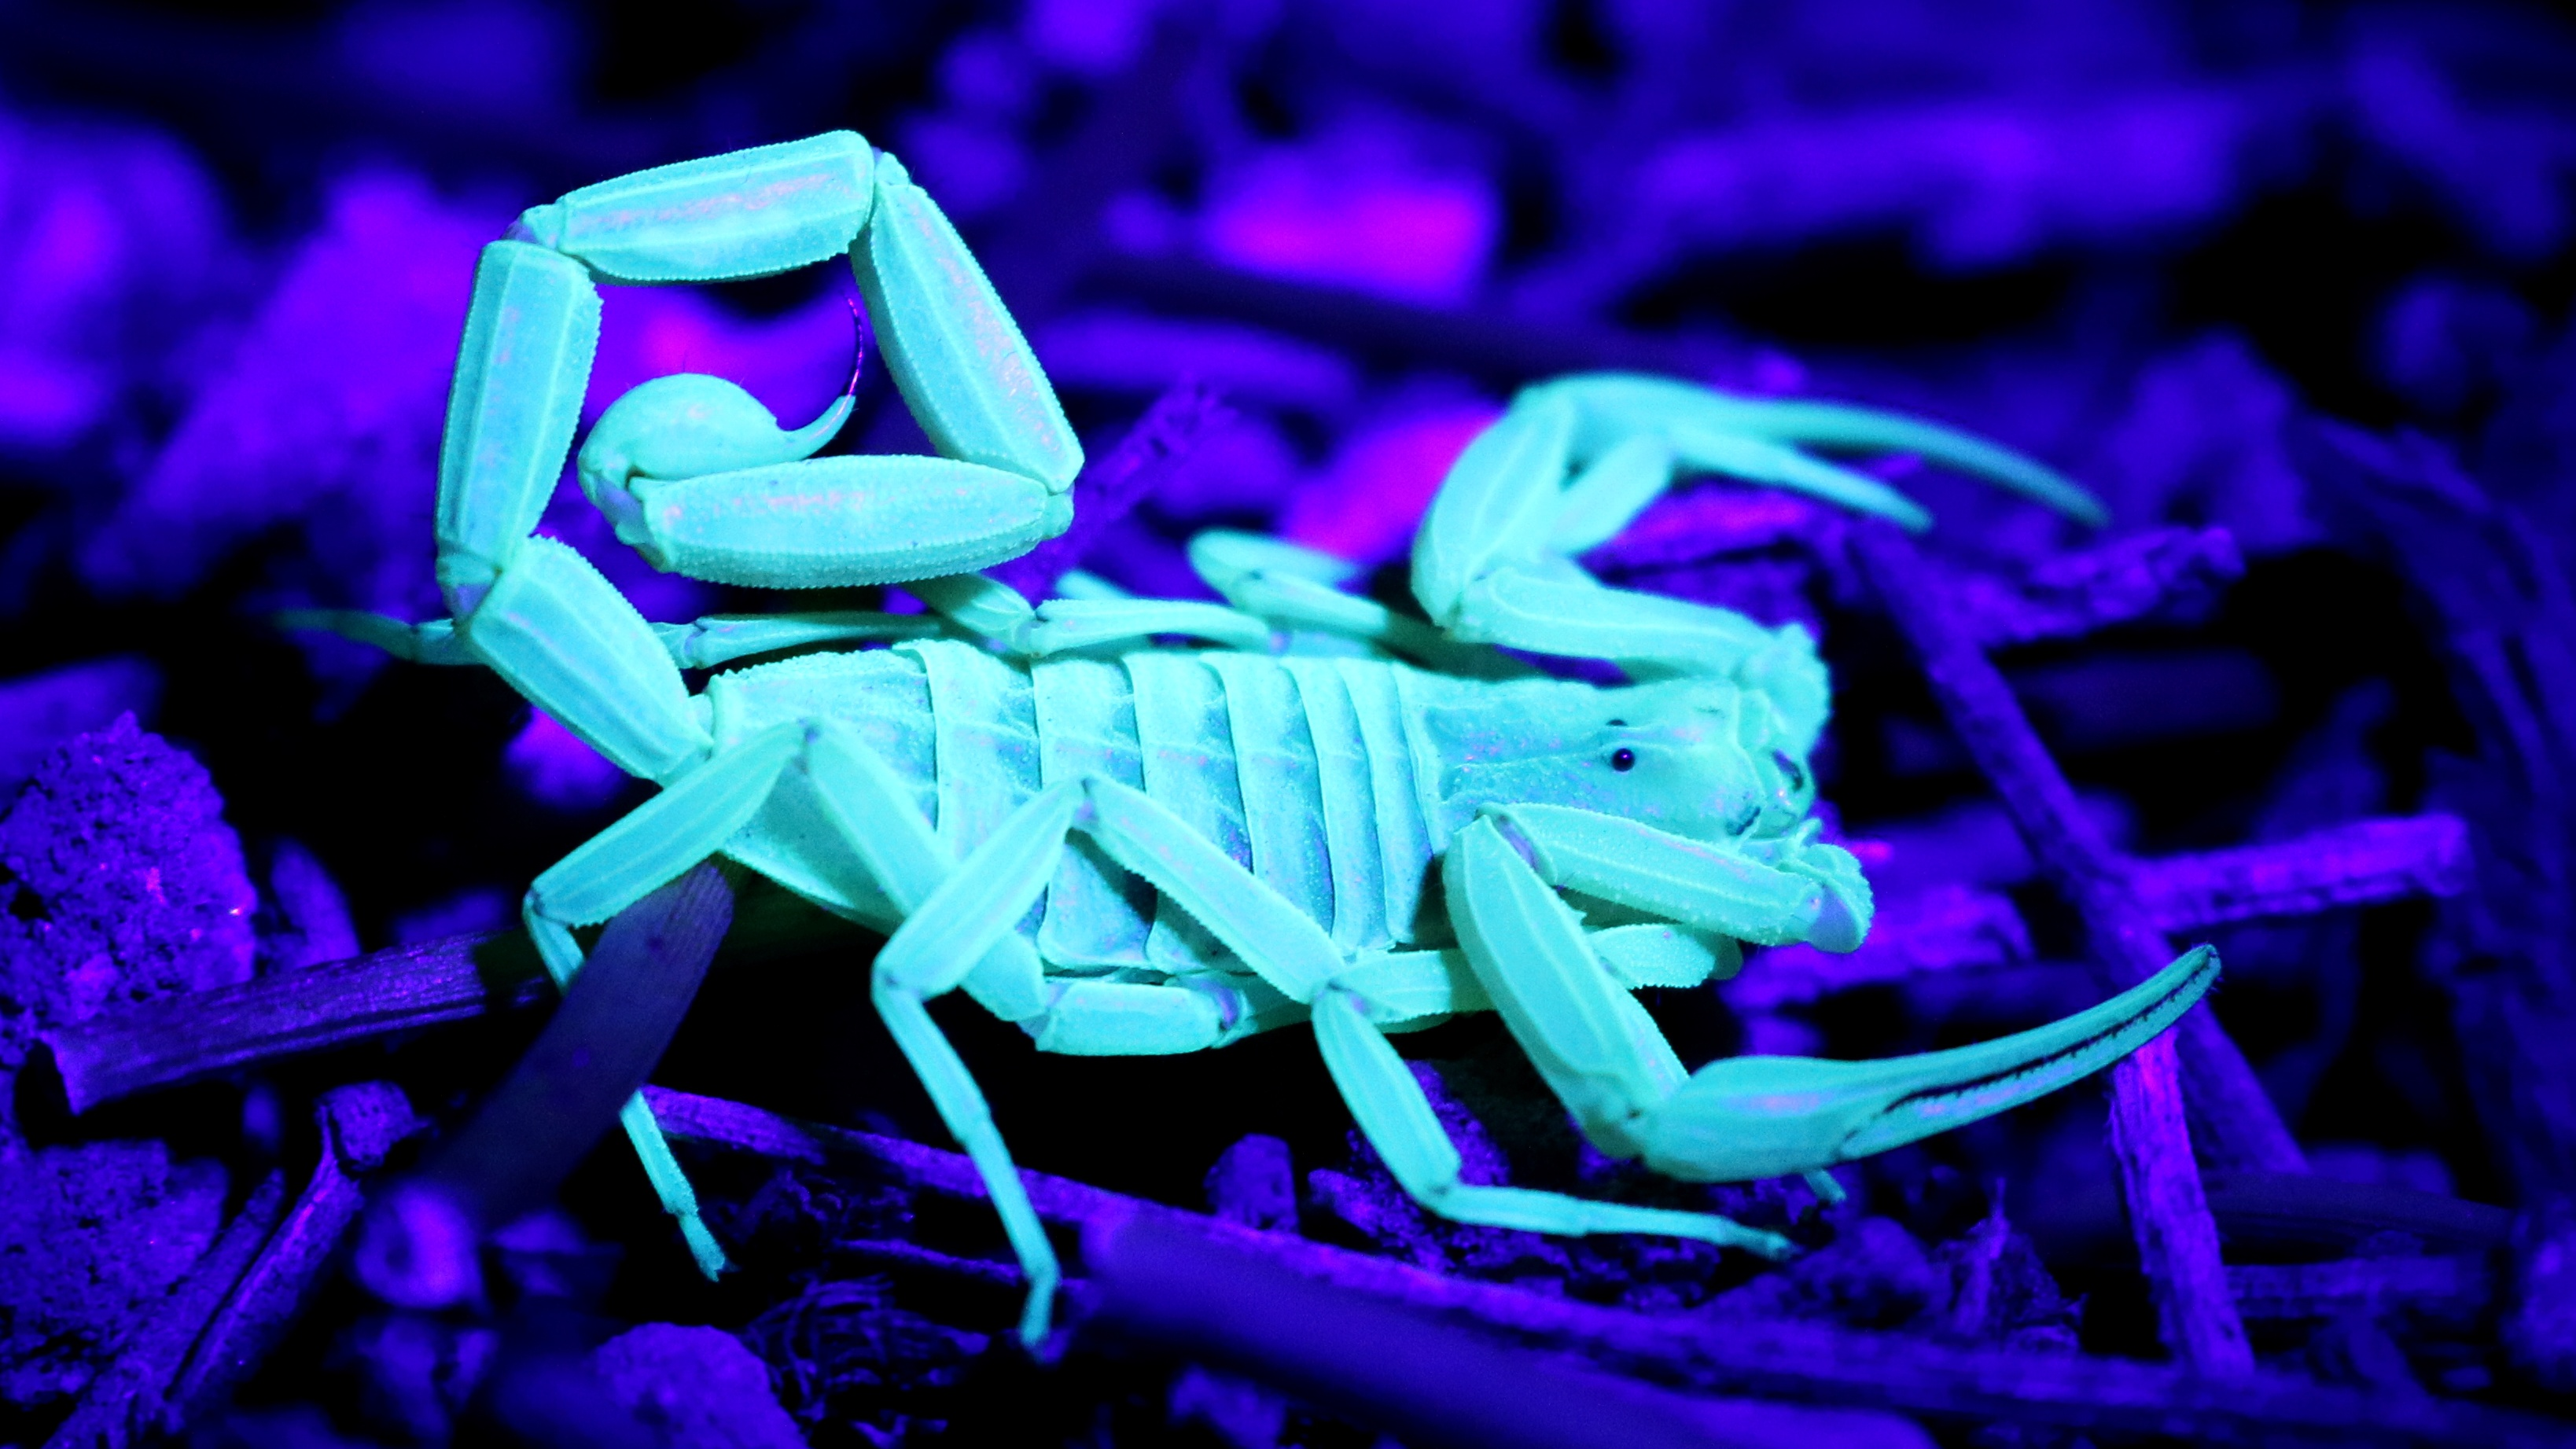 What is a white scorpion?